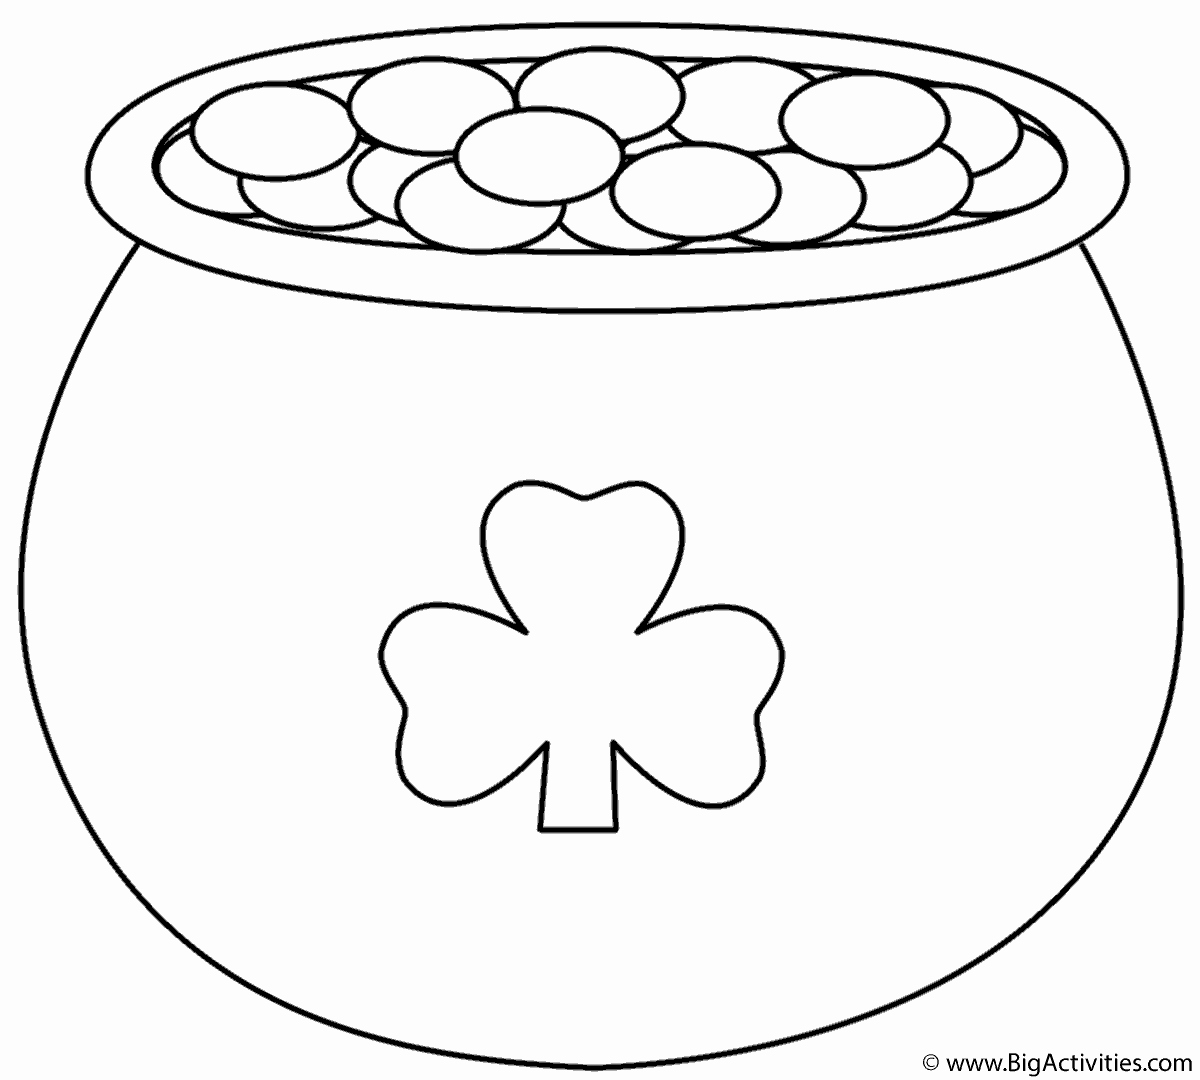 Shamrock Pictures to Print Inspirational Pot Of Gold with Shamrock Coloring Page St Patrick S Day